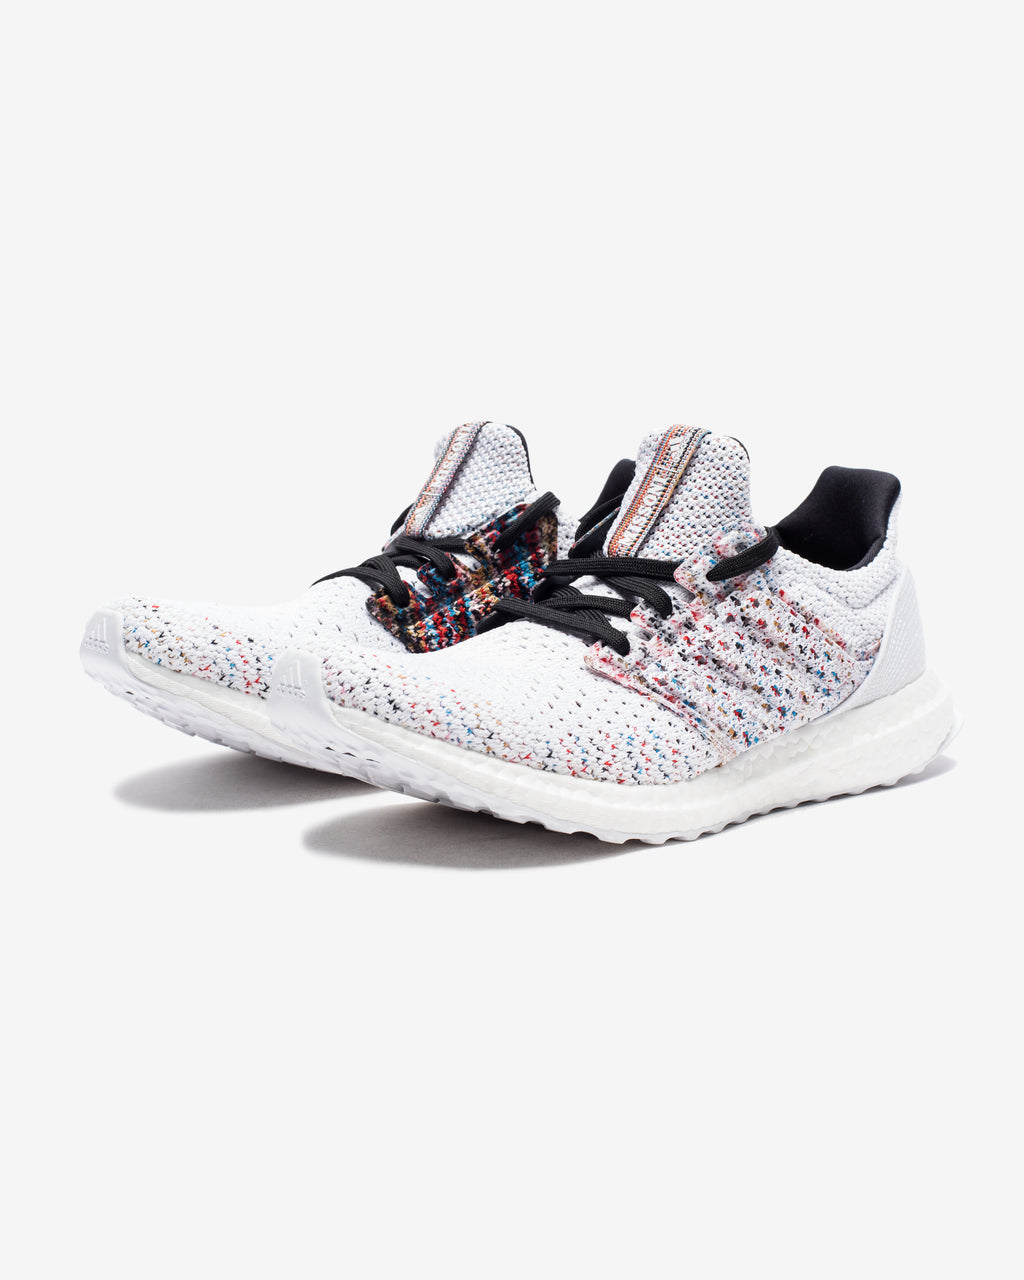 ADIDAS X MISSONI ULTRABOOST CLIMA - FTWWHT/ACTRED